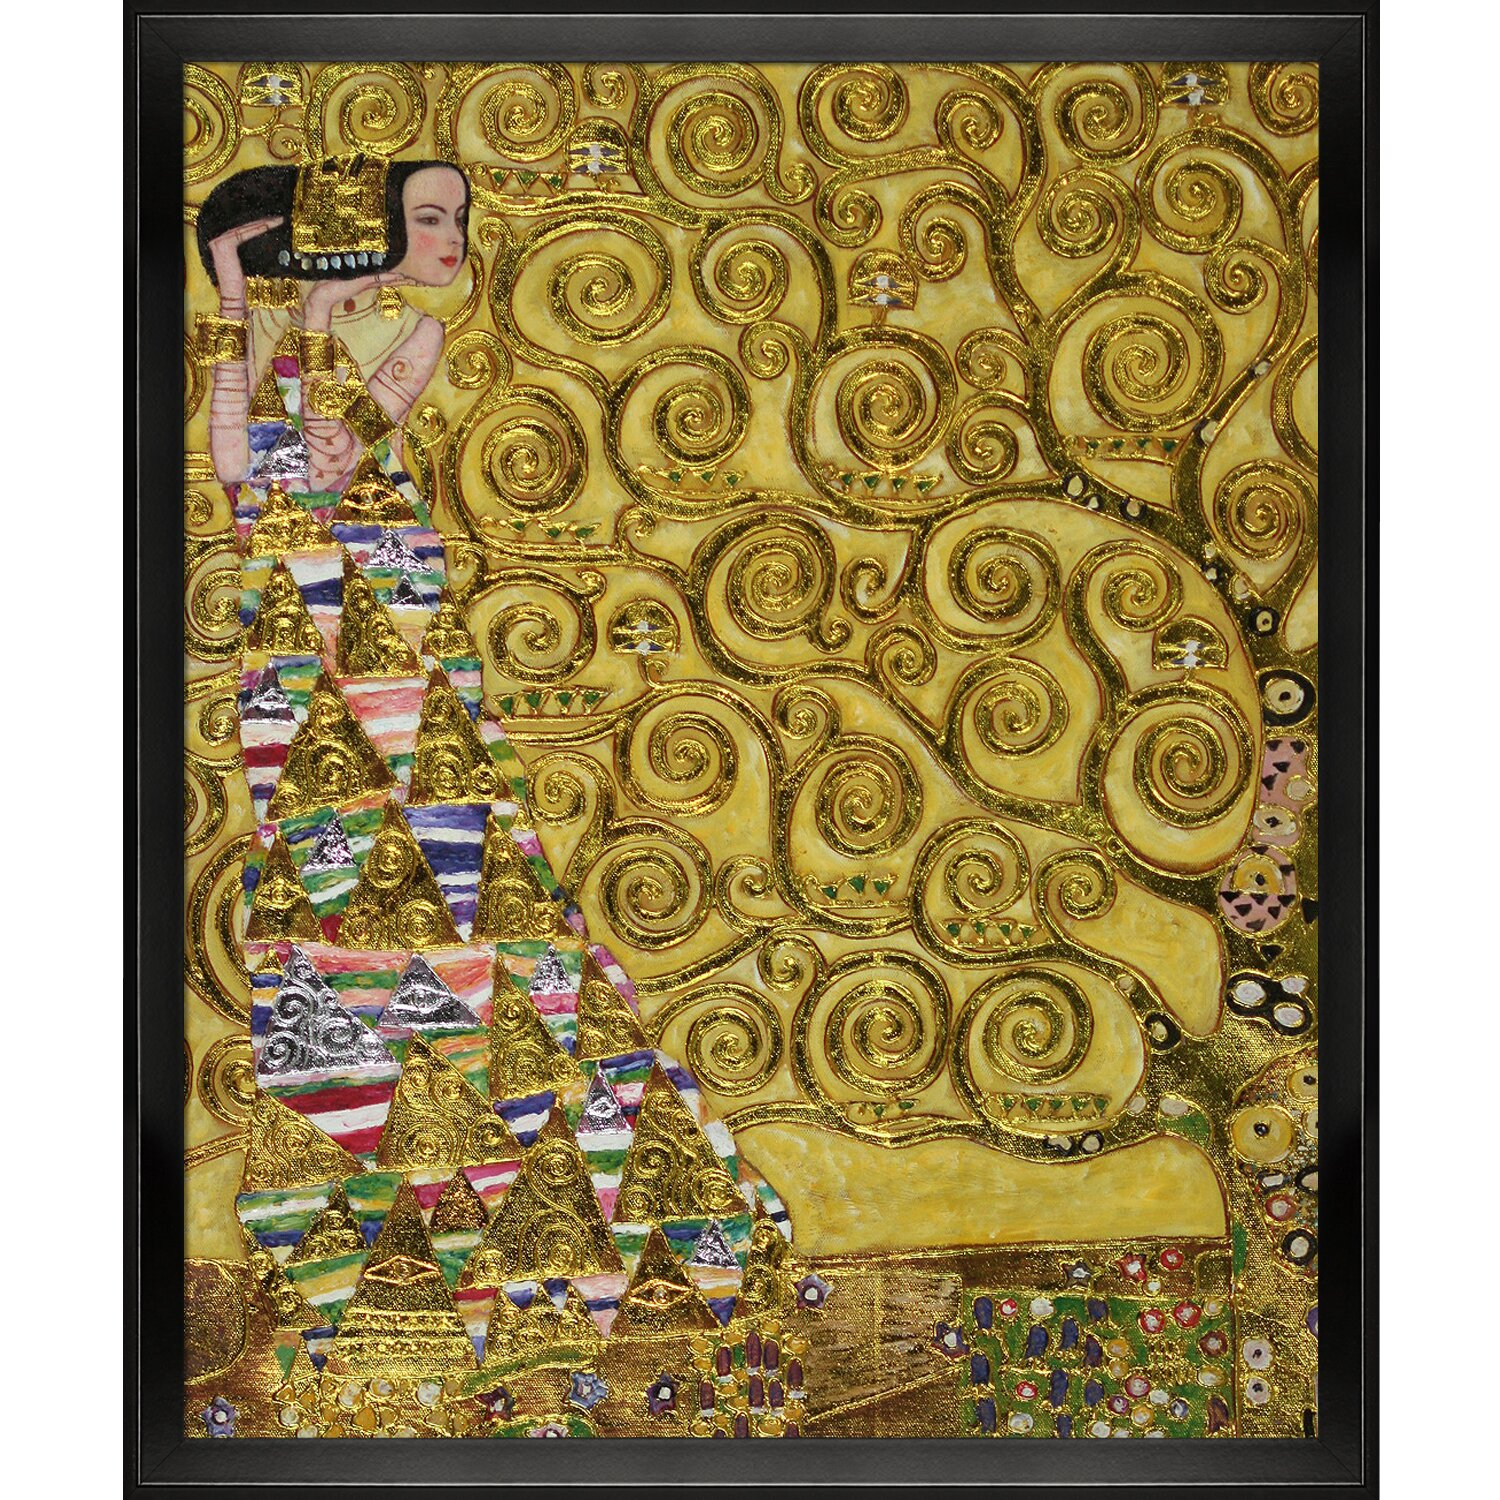 Tori home expectation by gustav klimt framed original for Gustav klimt original paintings for sale